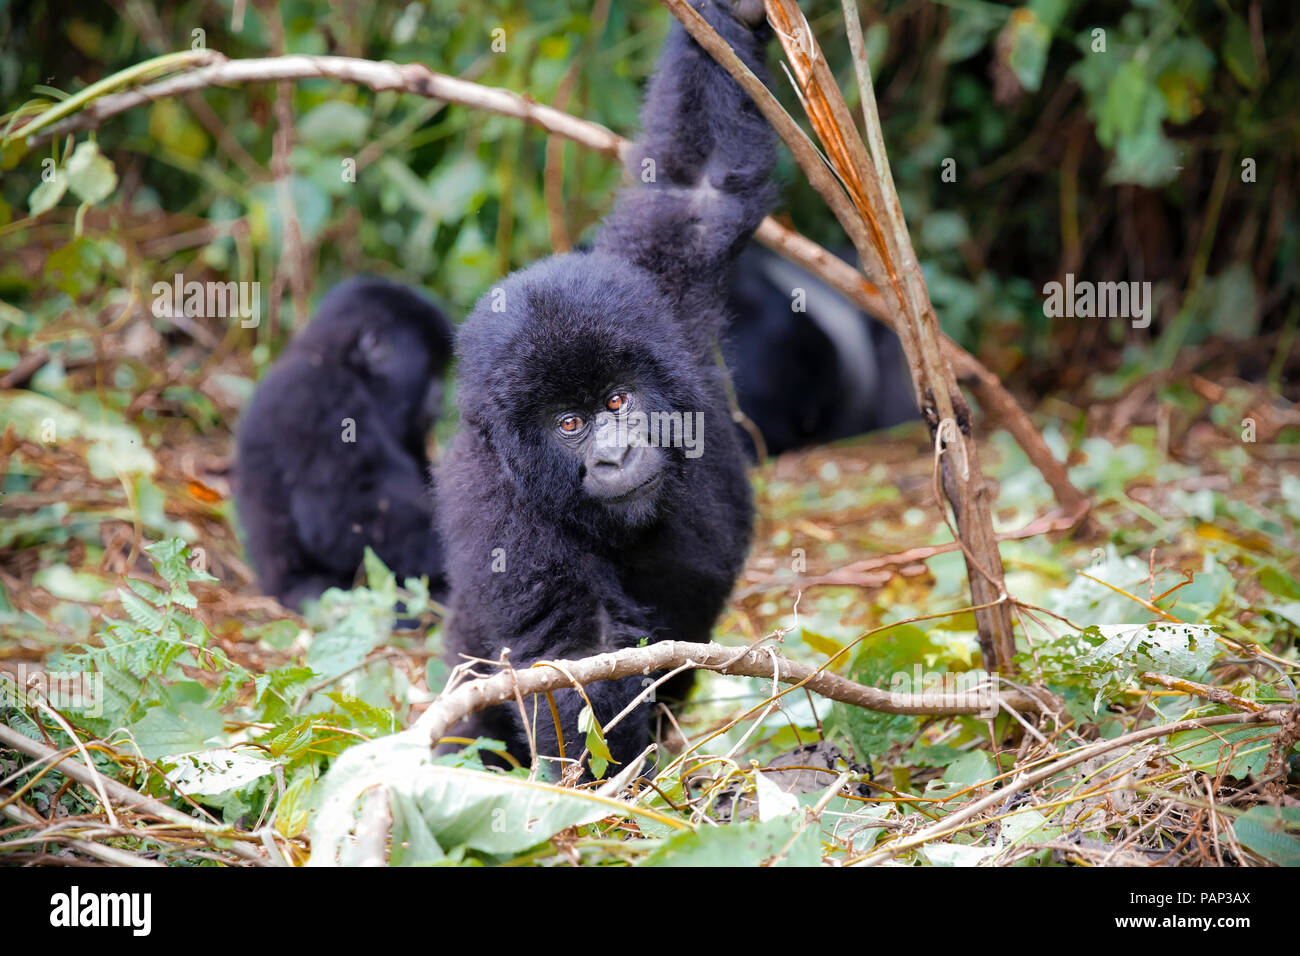 Africa, Democratic Republic of Congo, Young mountain gorillas playing in jungle - Stock Image